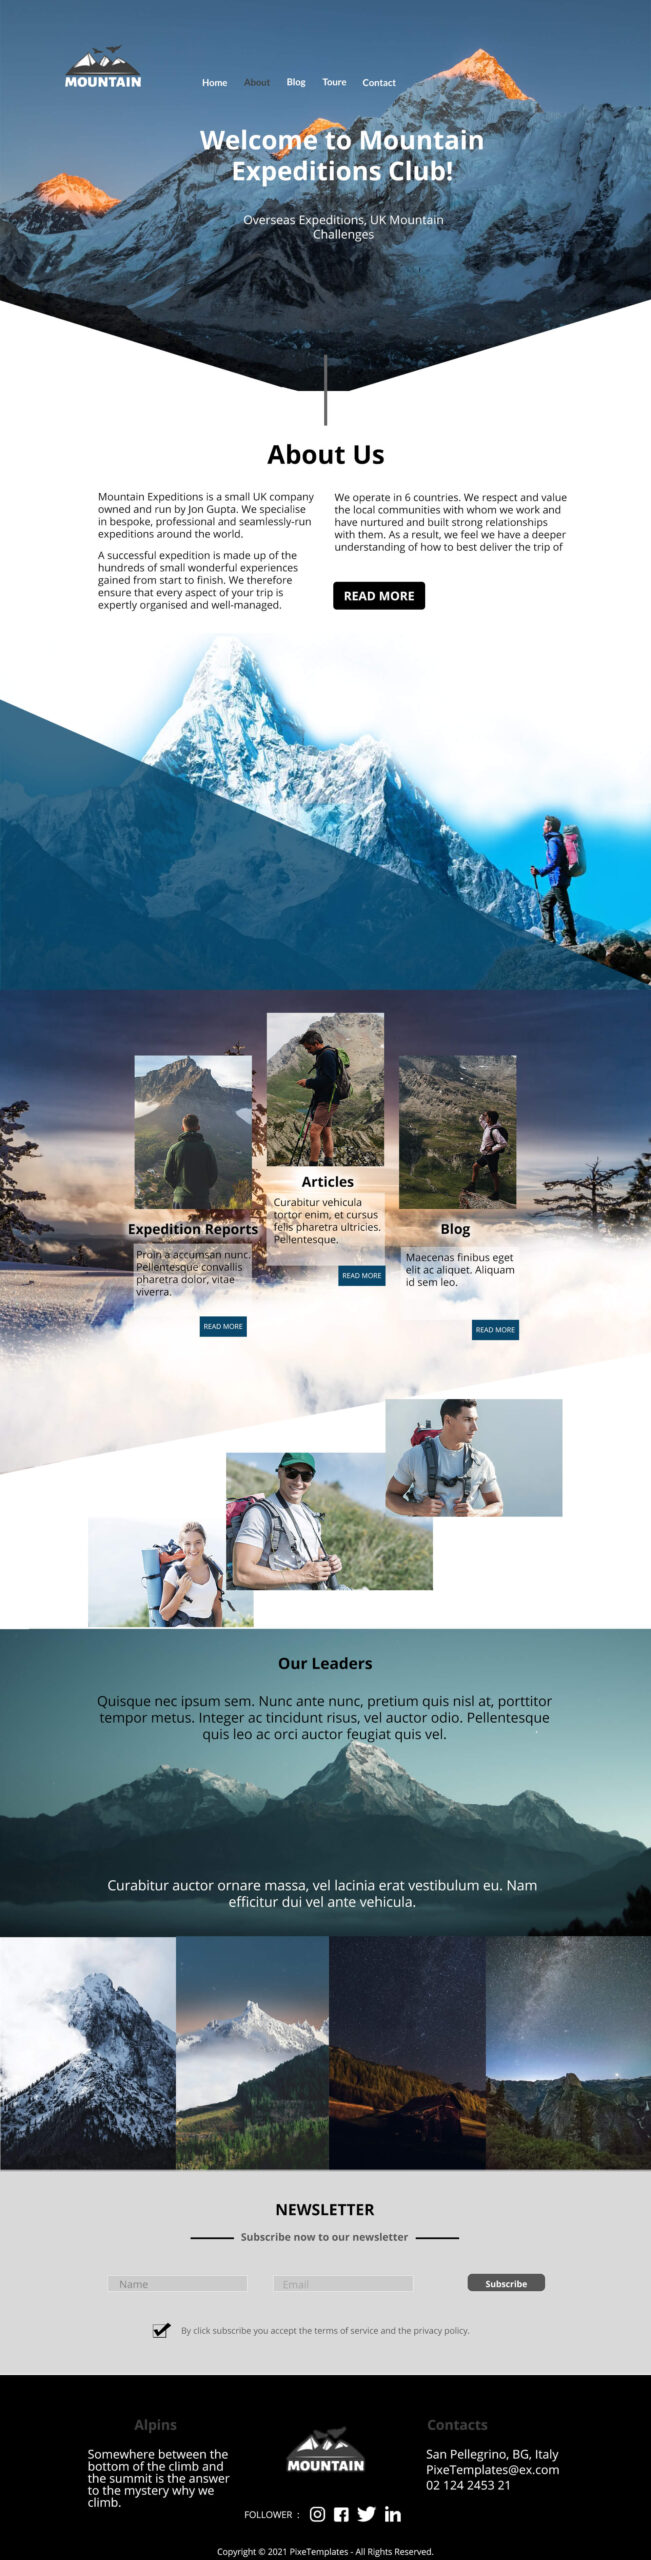 Free Web Interface for Mountain Expedition Club